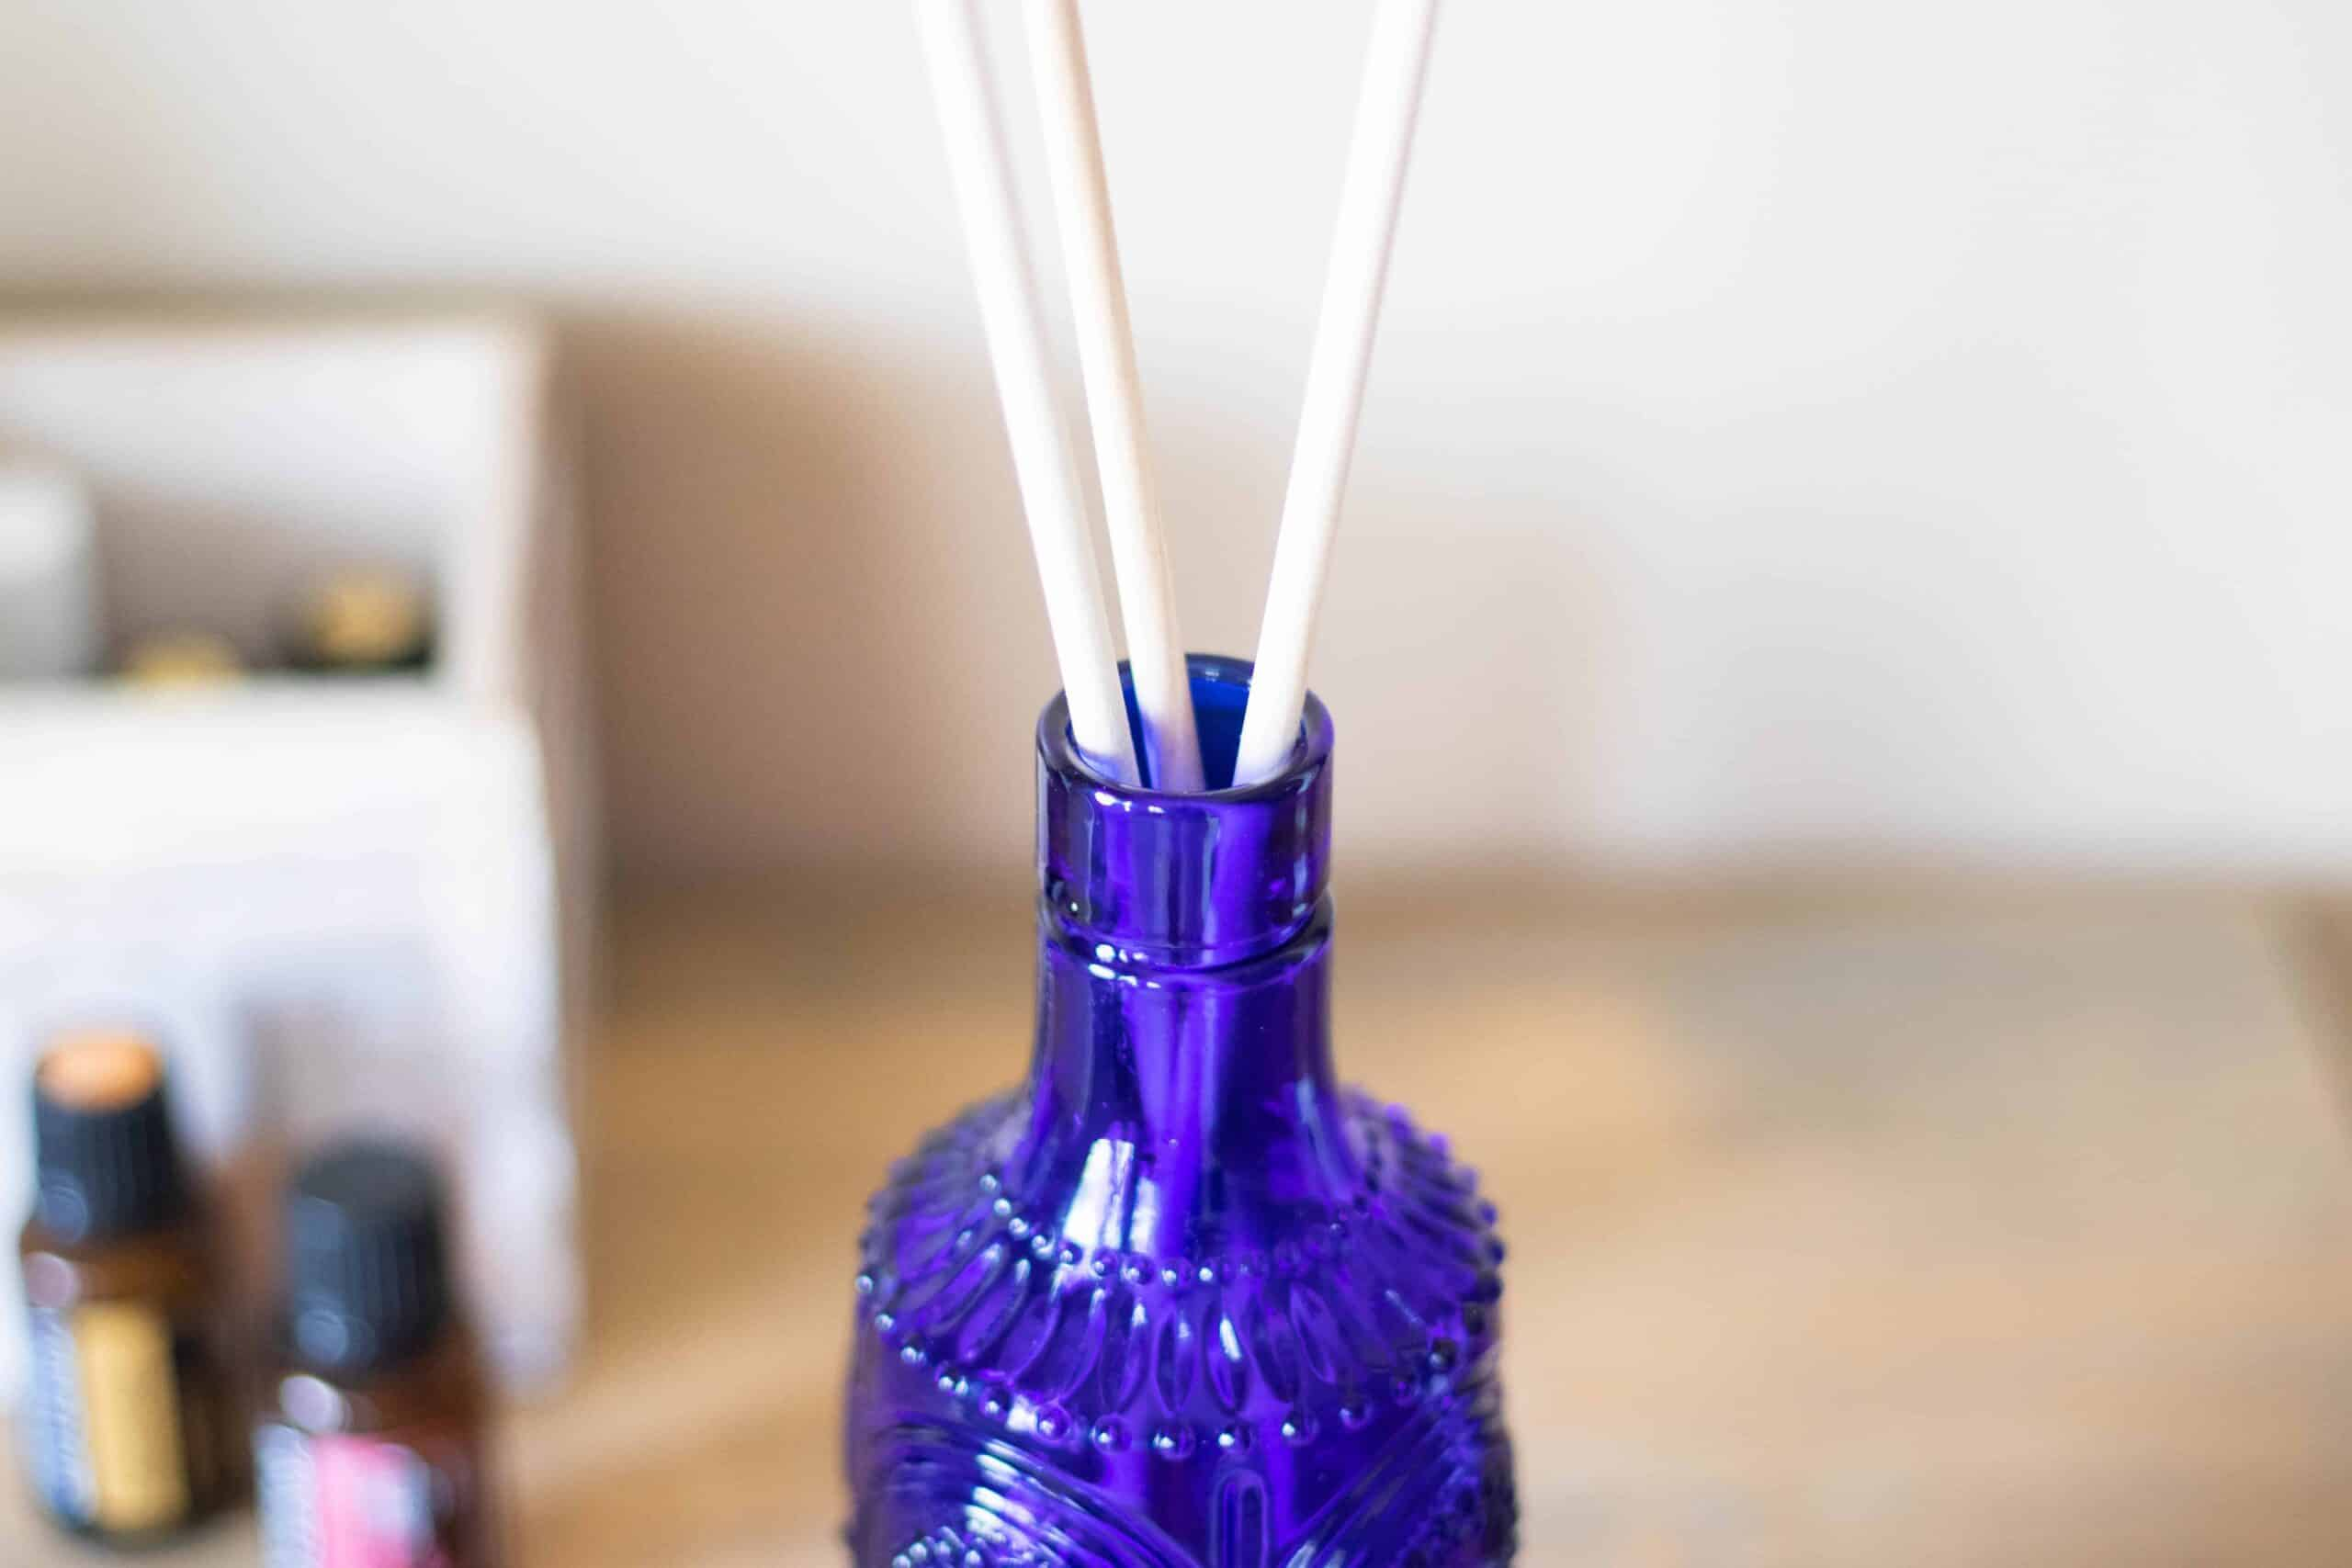 homemade reed diffuser in blue vase on corner table